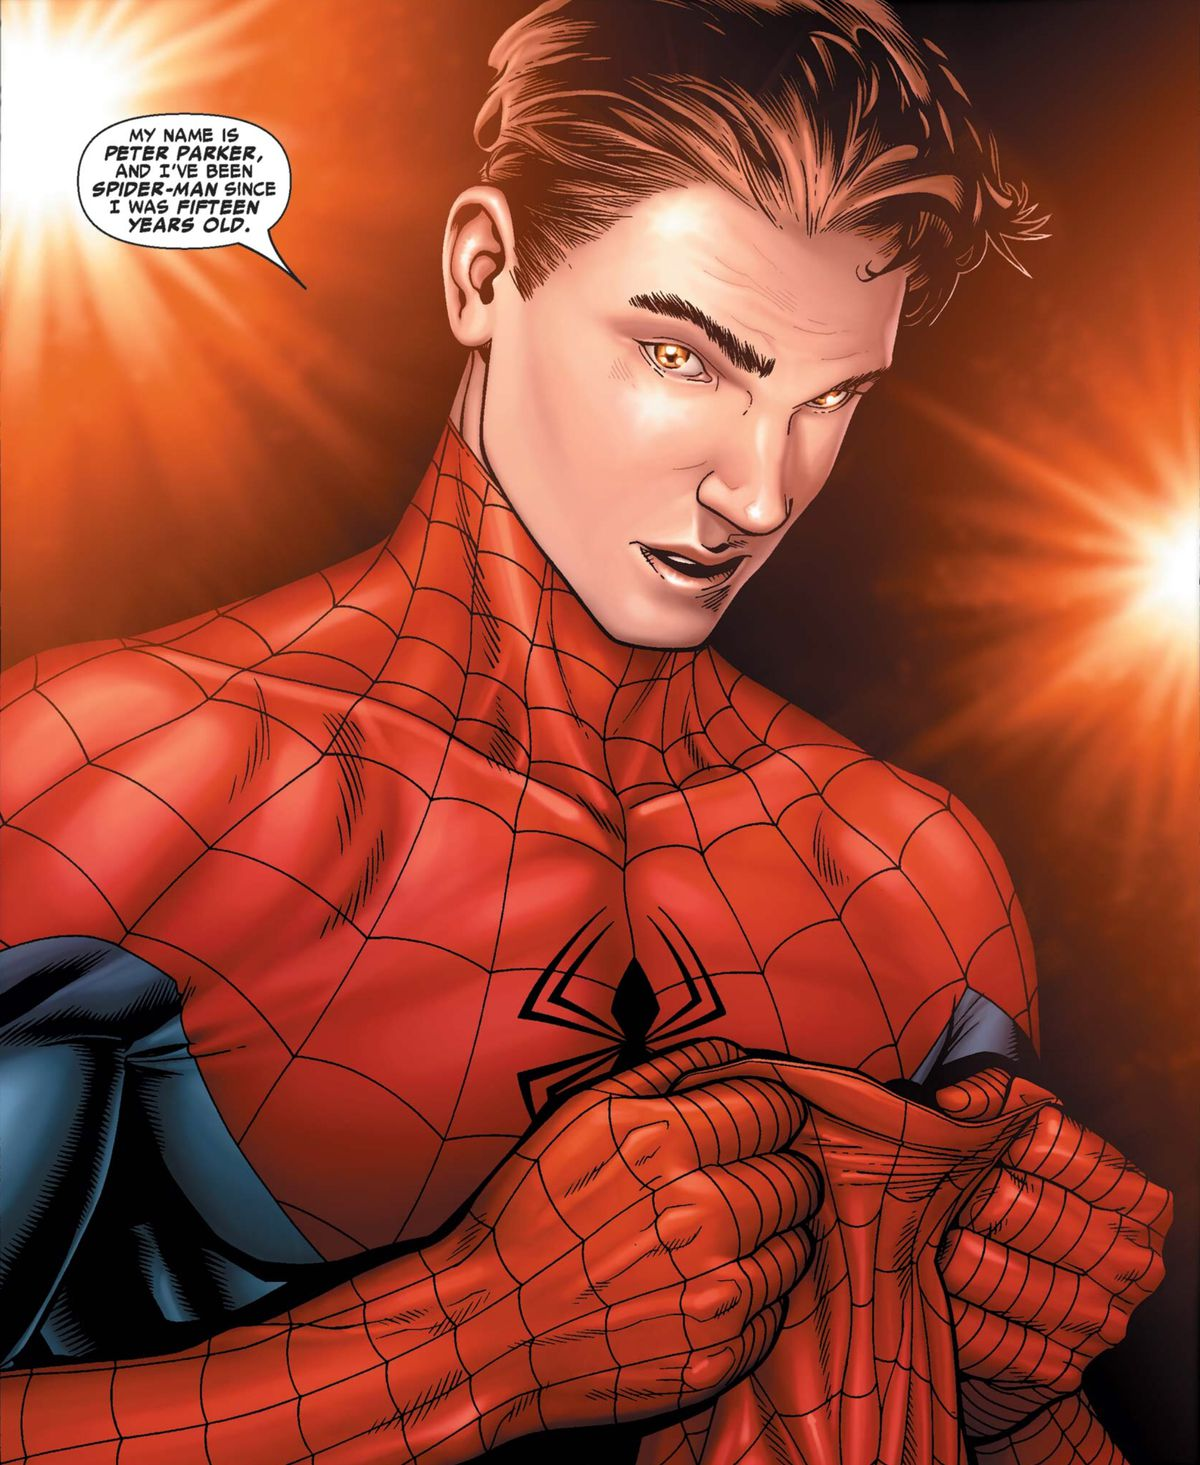 """Peter Parker unmasks in front of flashing photographers, saying, """"My name is Peter Parker and I've been Spider-Man since I was 15 years old,"""" in Civil War #2, Marvel Comics (2006)."""